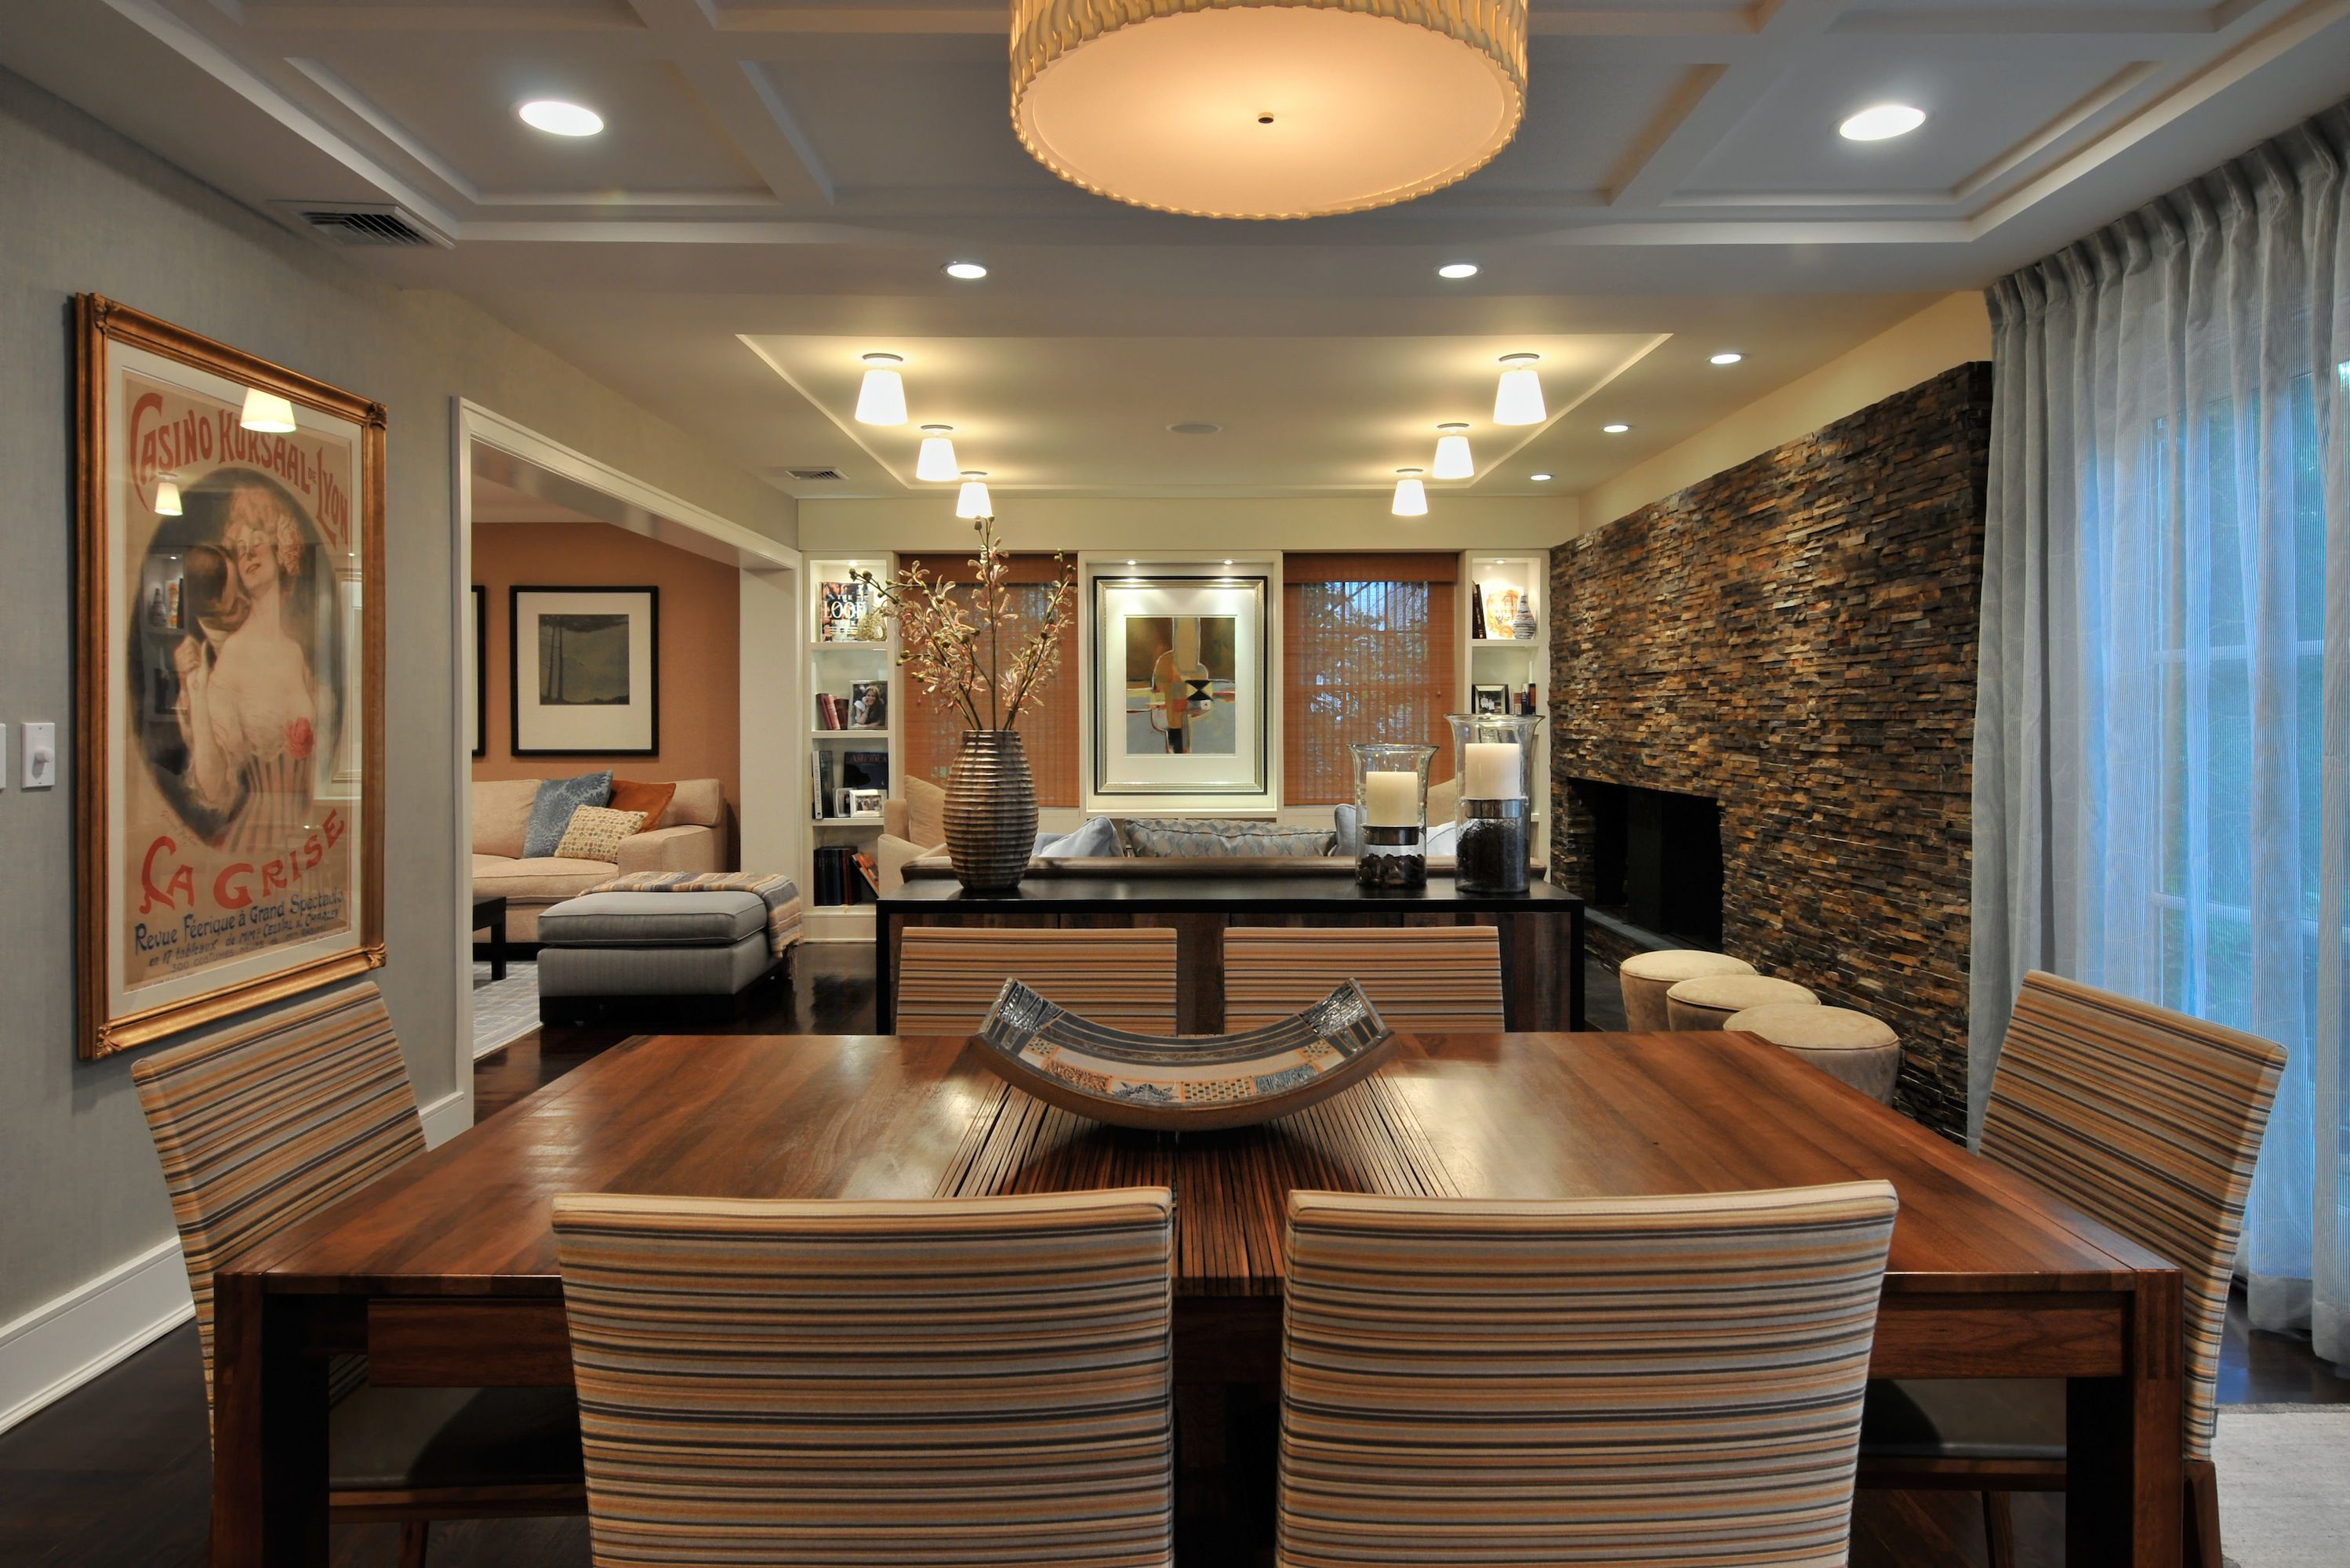 tips for designing an open floor plan in home interior design decor also rh pinterest